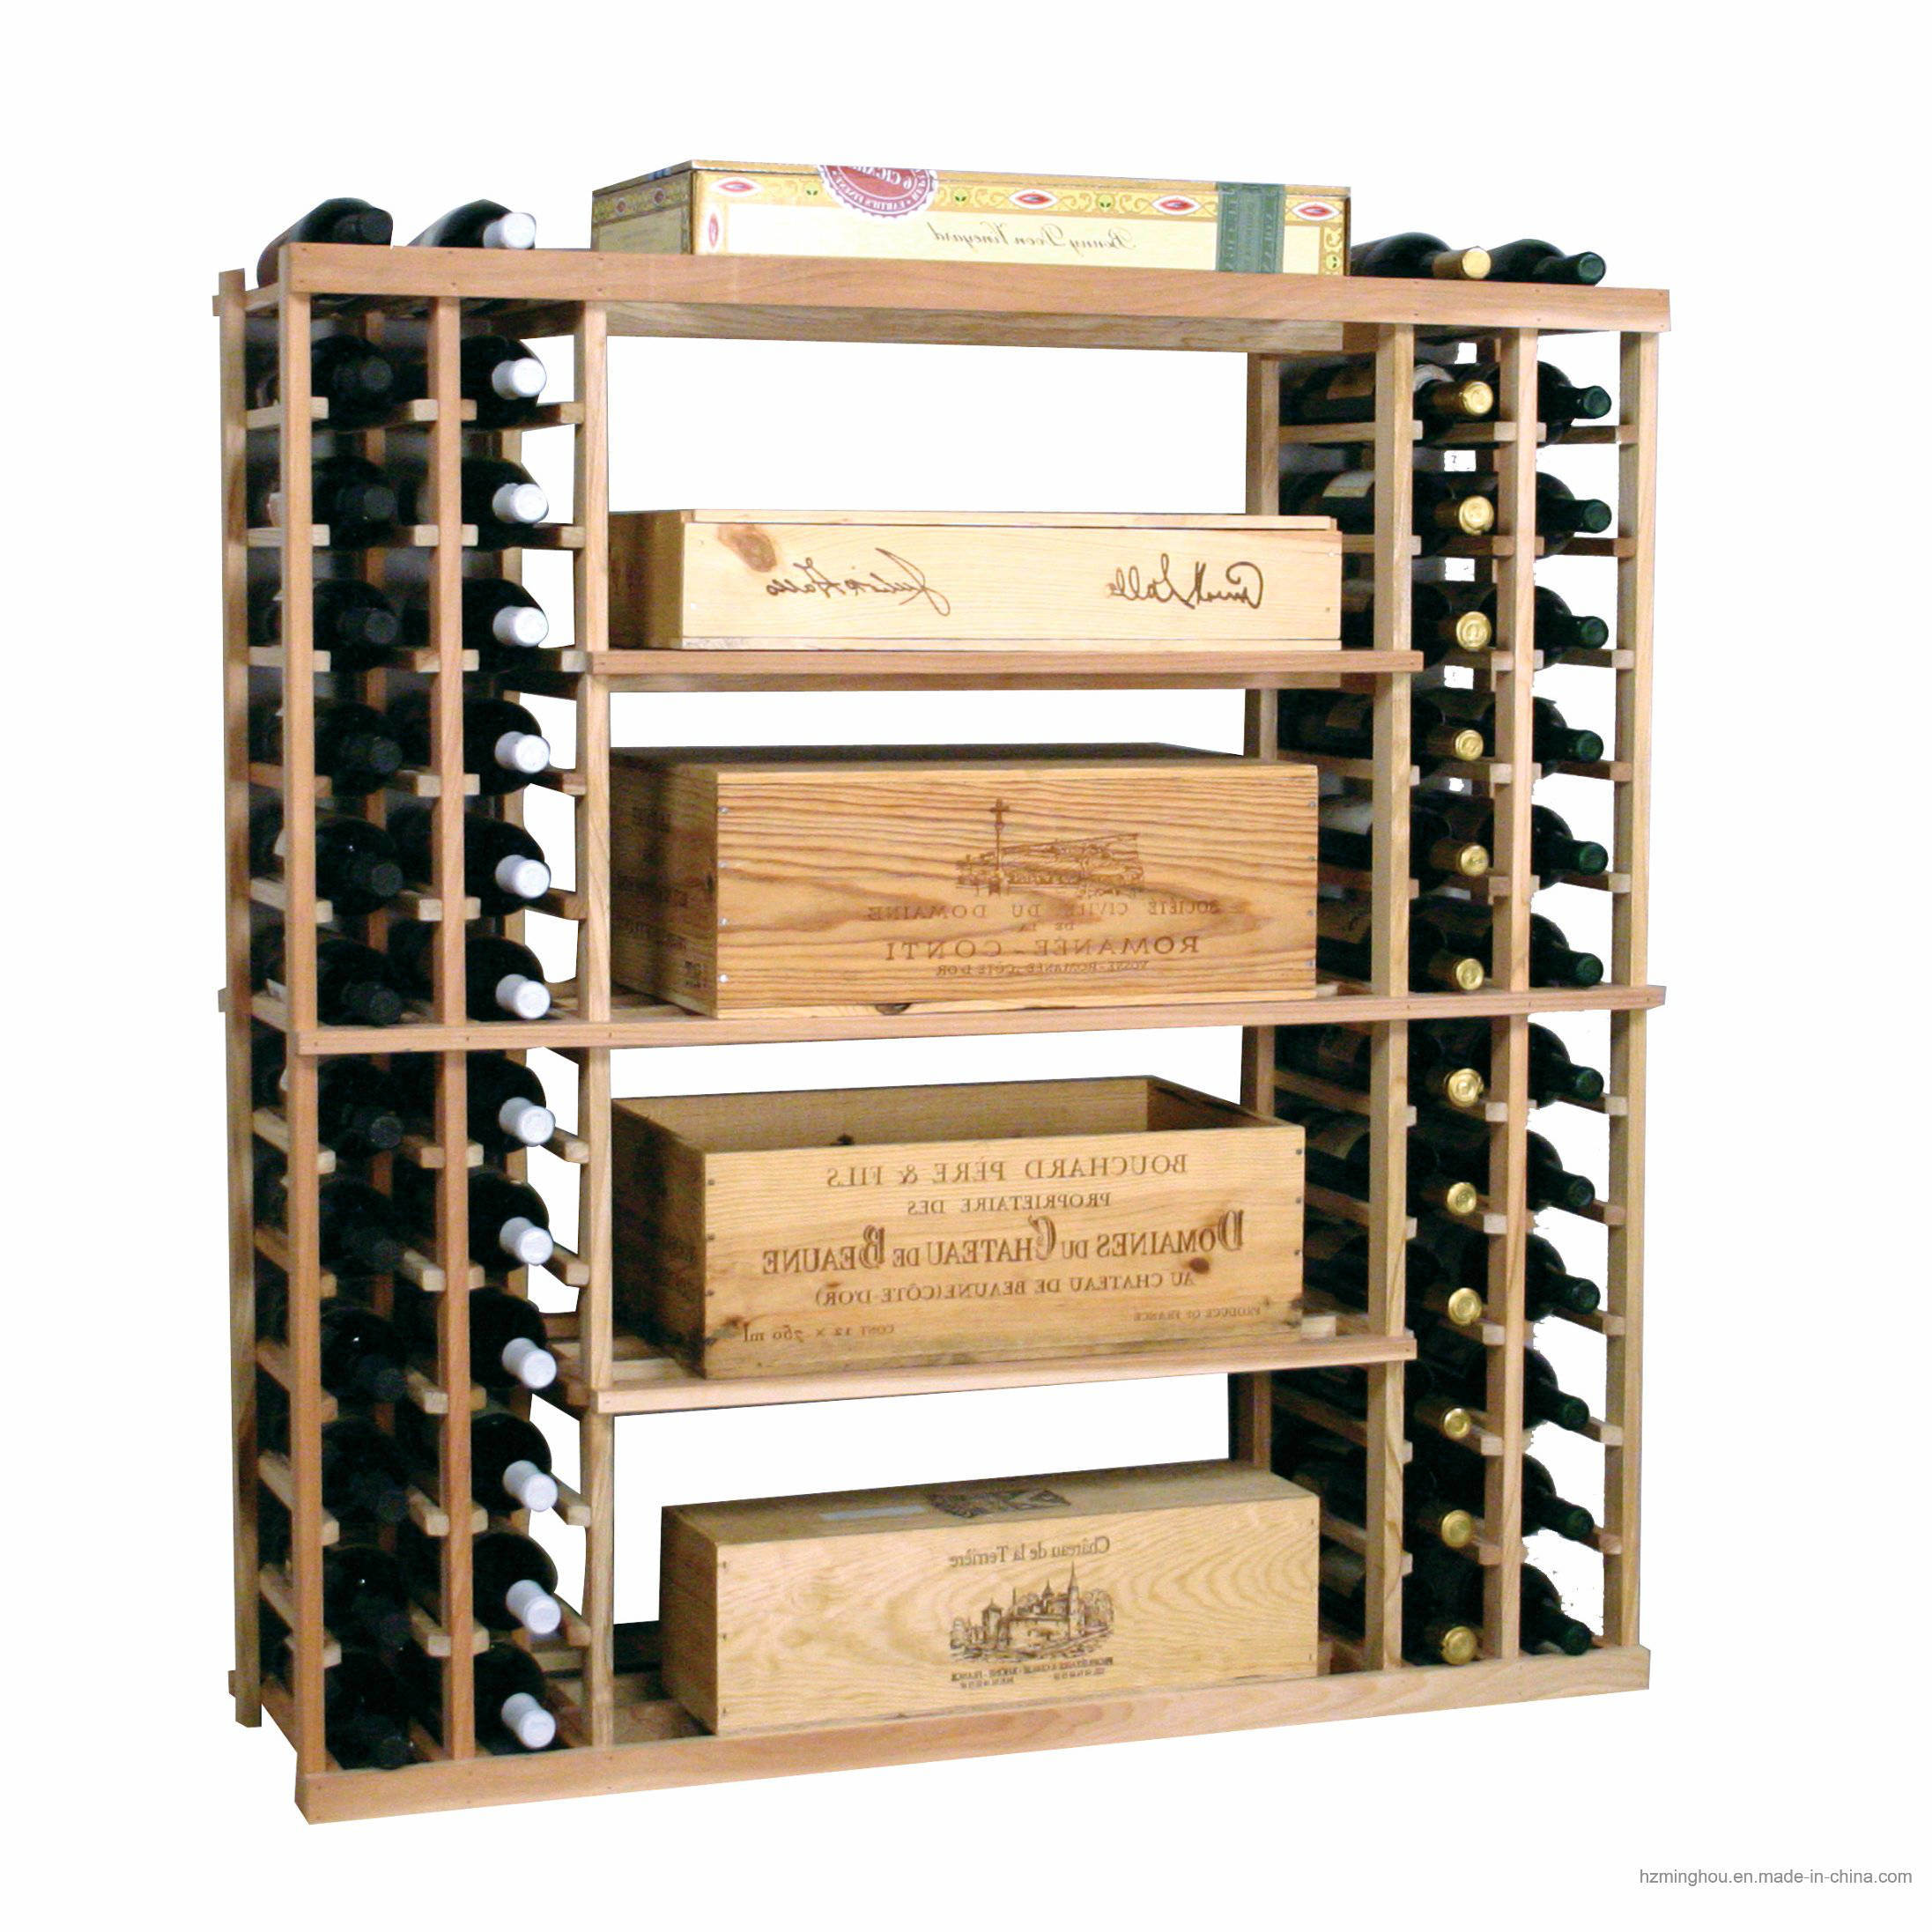 Customize Roll-out Bins Wood Storage display Wine Cellar Rack System